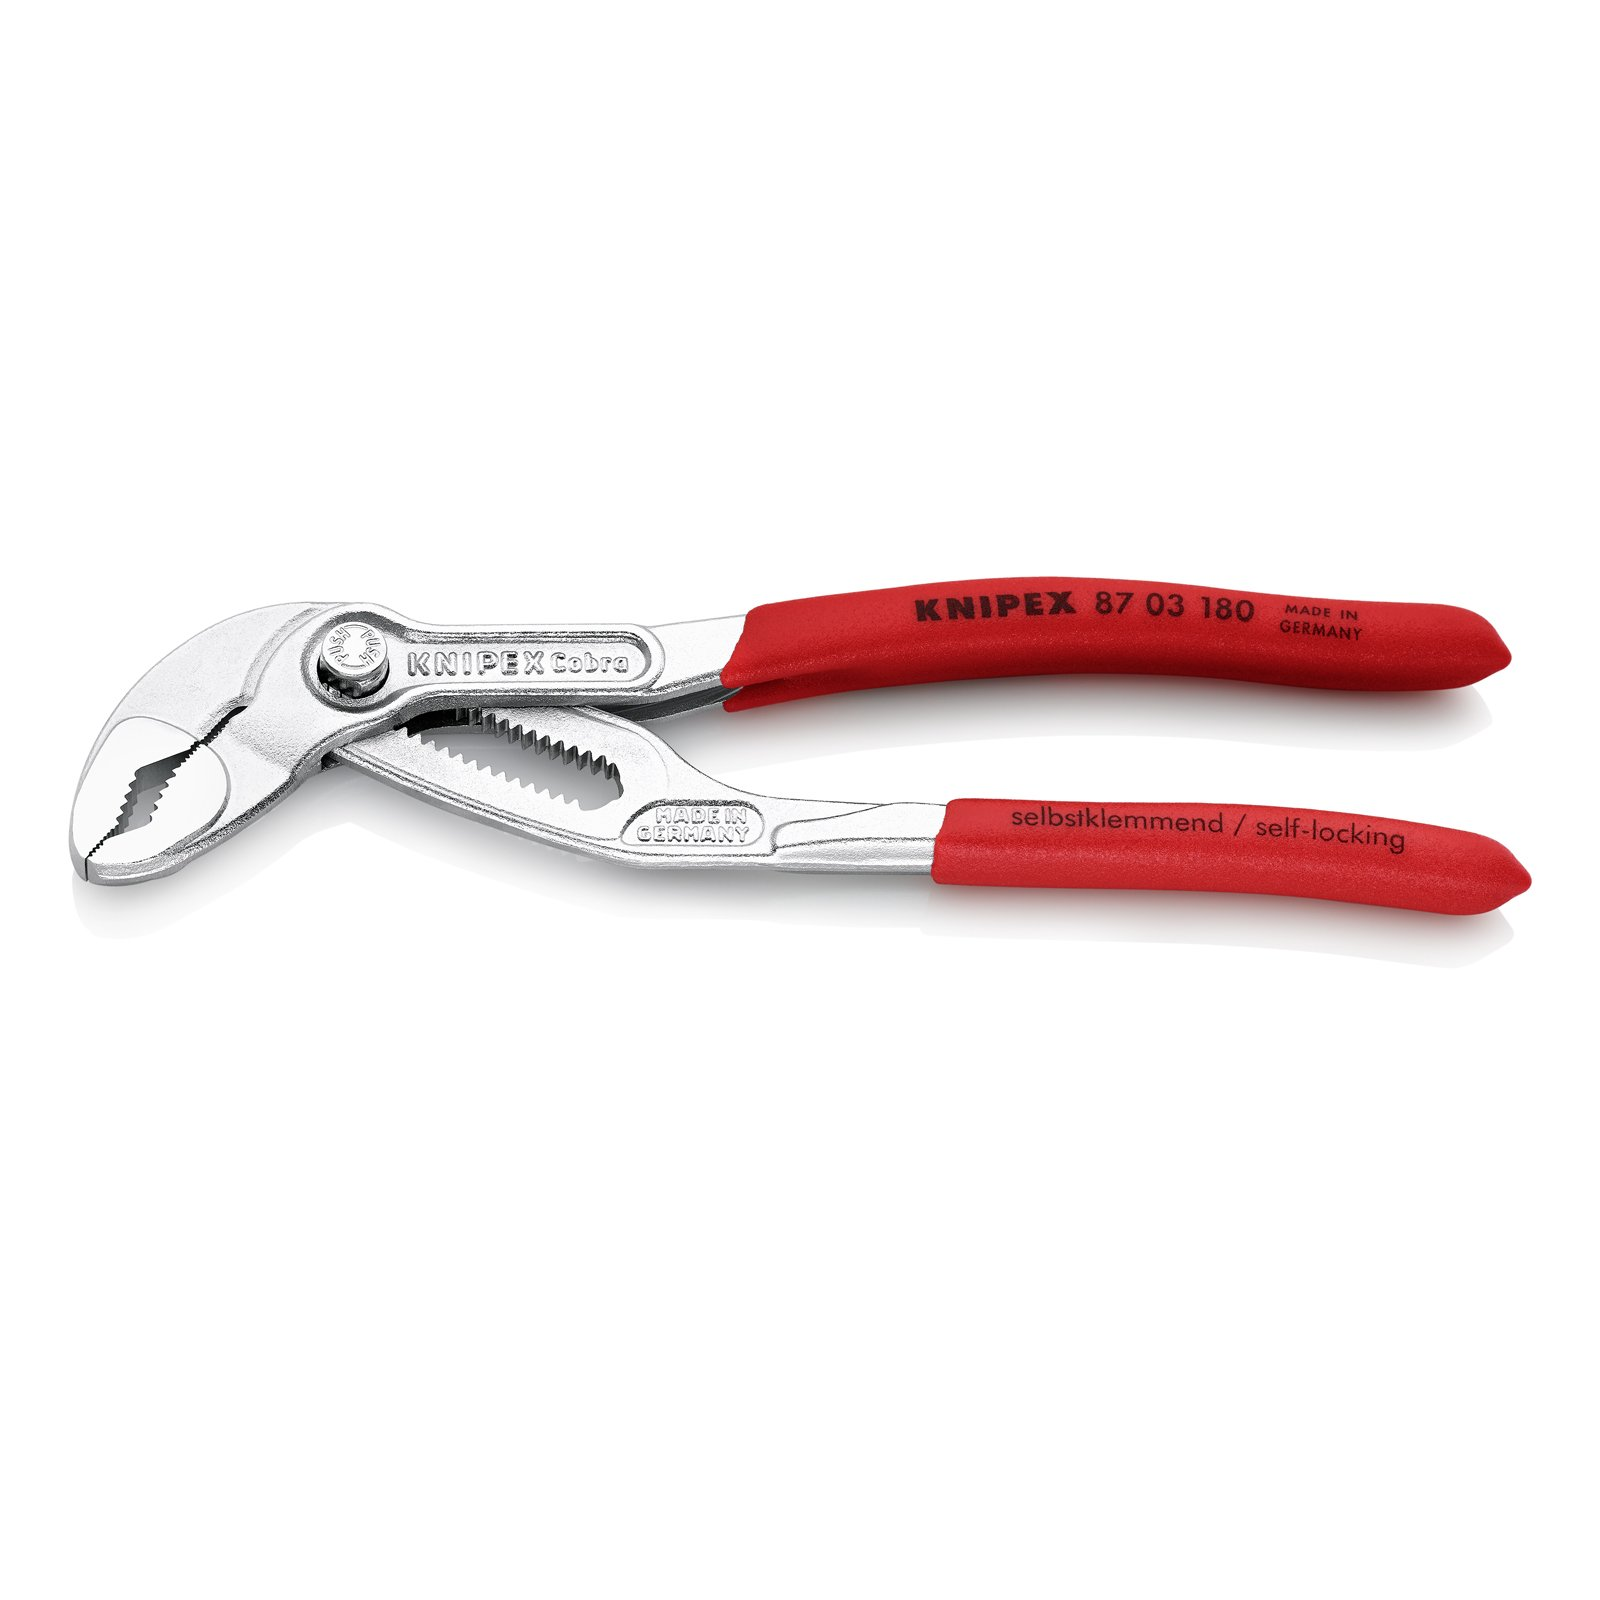 Knipex 87 03 180 Water Pump Pliers''Cobra'' 7,09'' chrome plated by KNIPEX Tools